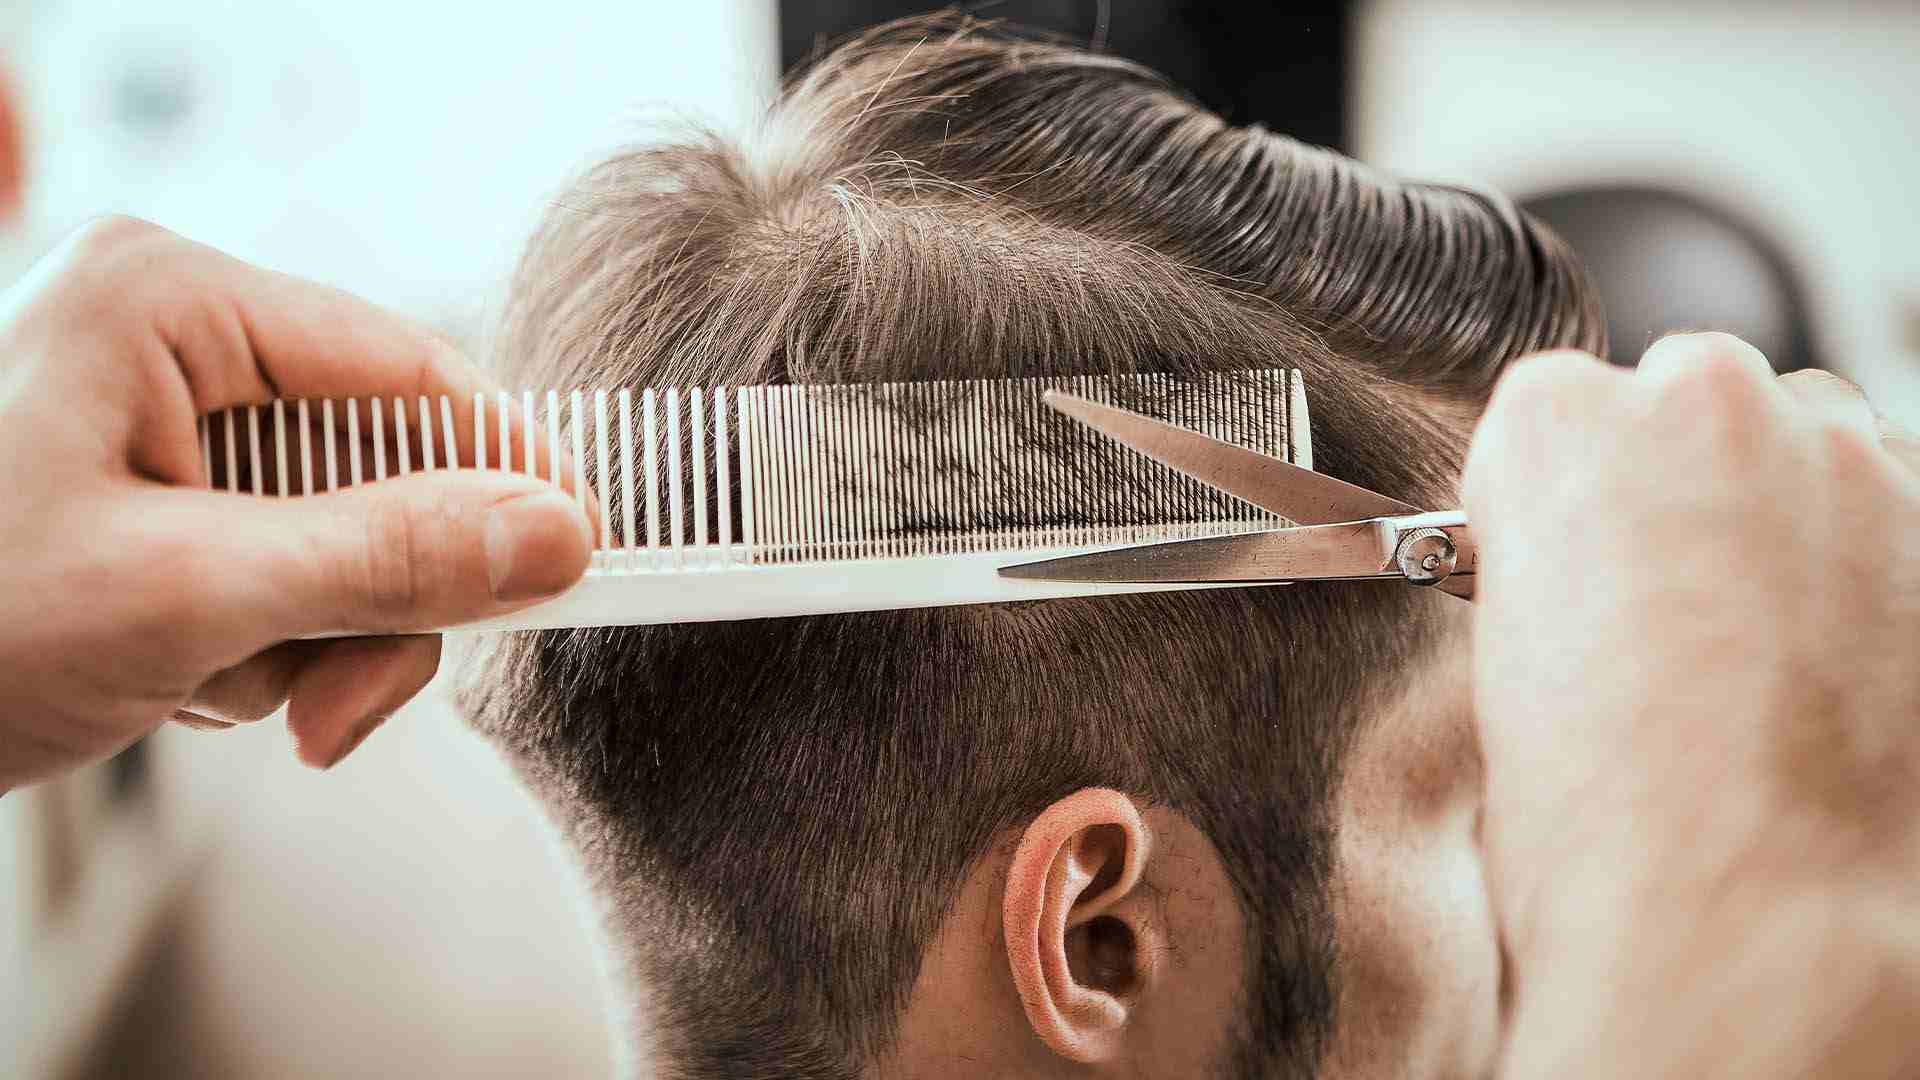 IMPORTANCE OF A GOOD HAIRSTYLE